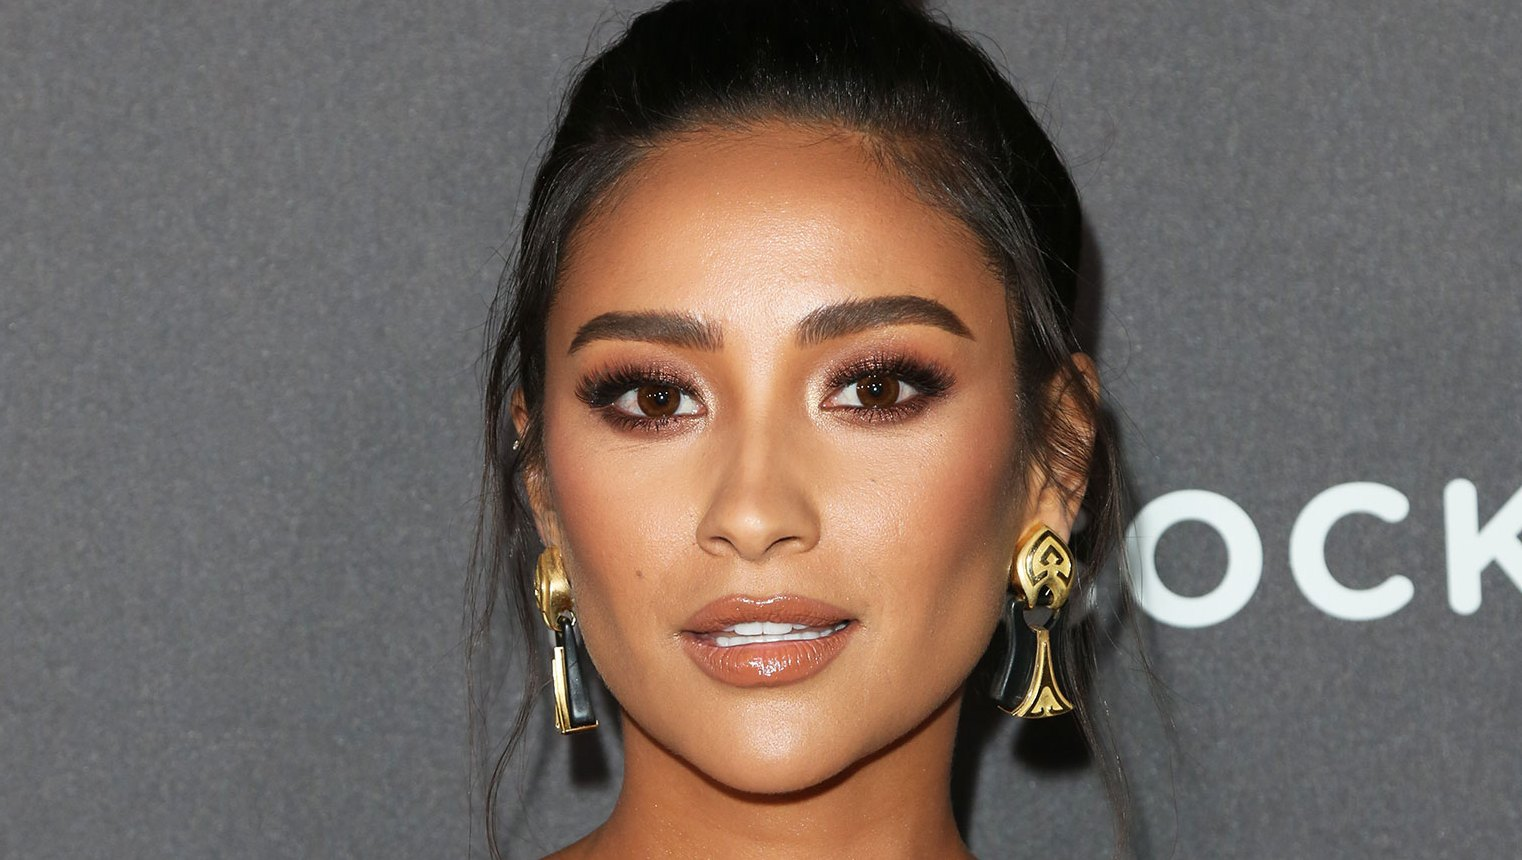 Shay Mitchell Celeb Makeup Artist Patrick Ta Is Launching His Own Line